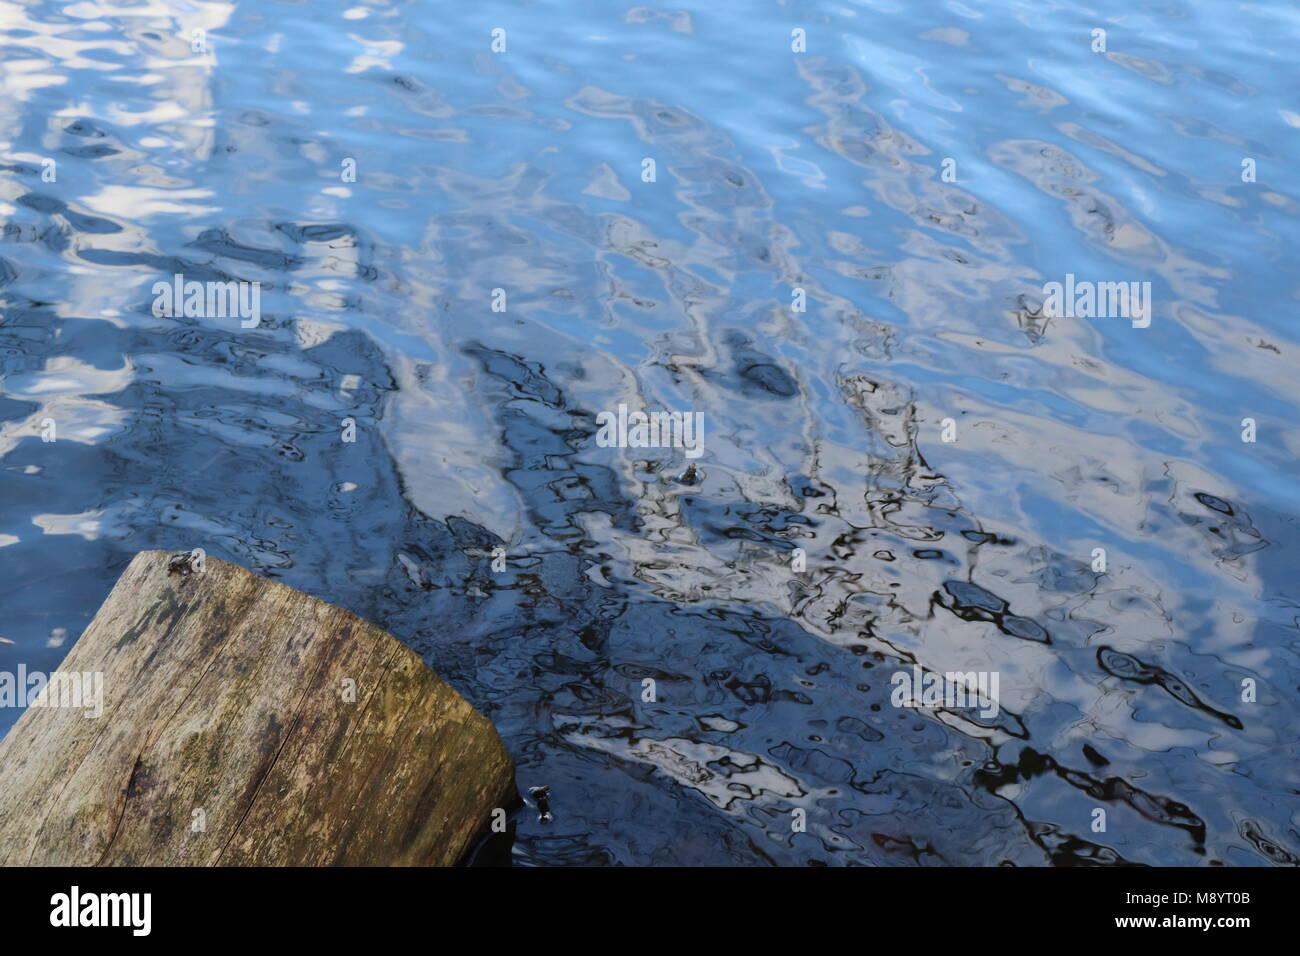 Abstract backgrounds, water, reflections - Stock Image